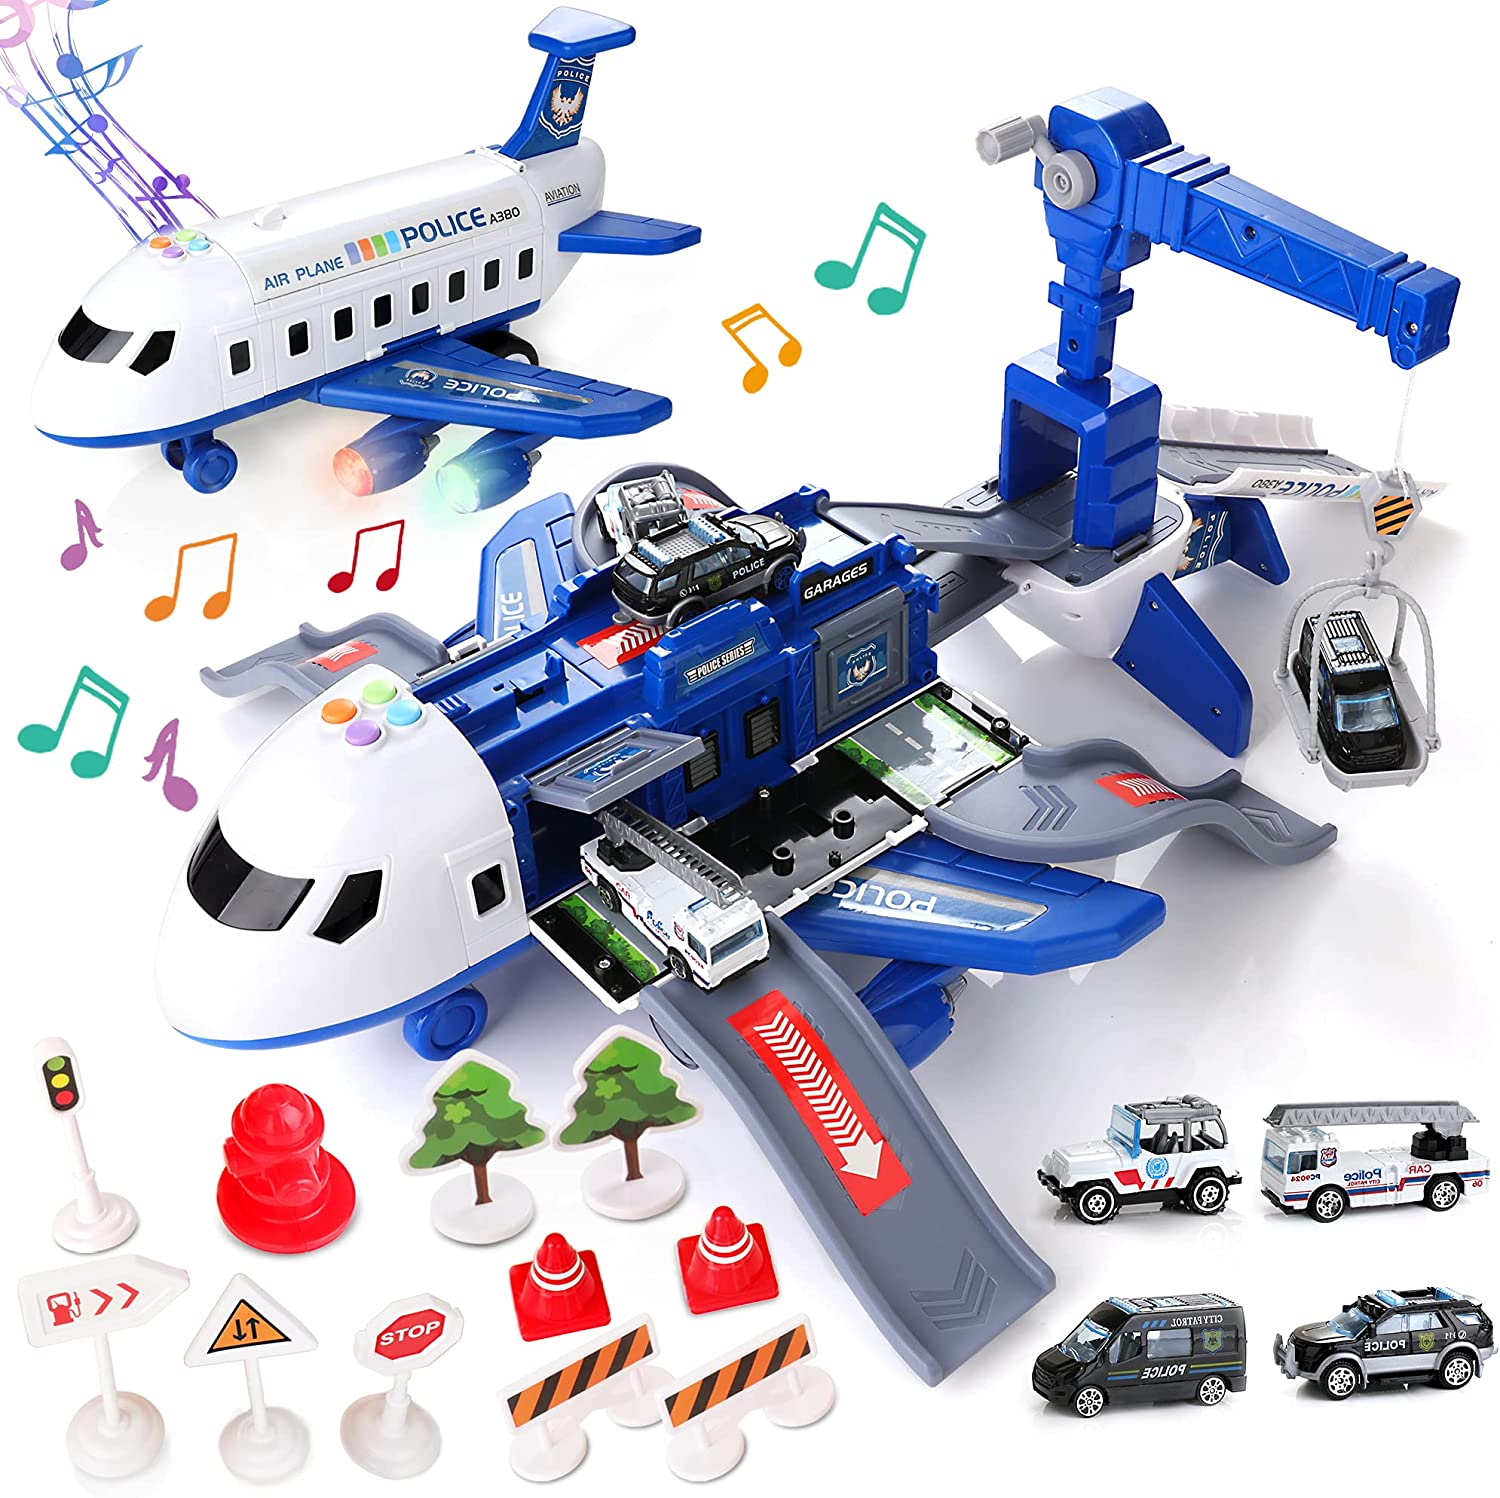 Airplane Toys Set with Transport Cargo 4pcs Policing Theme Vehicles Blue